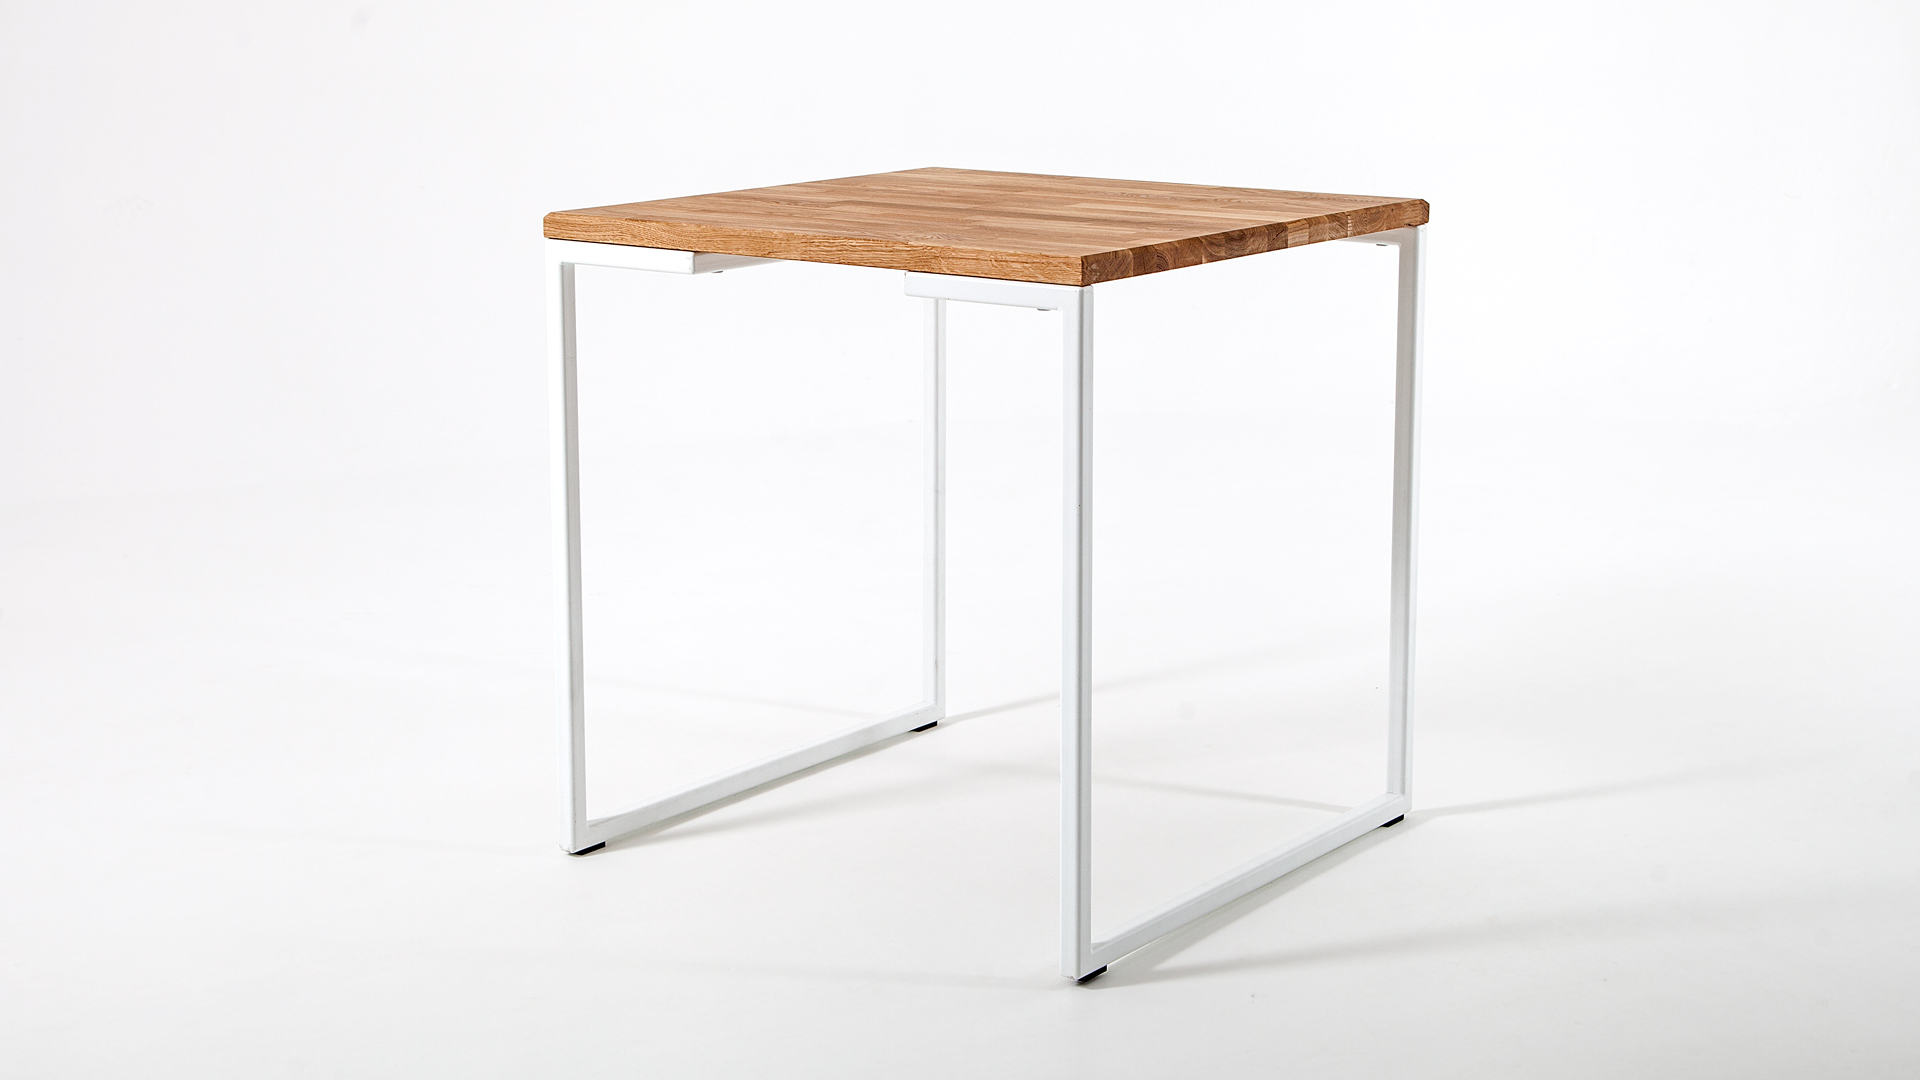 Cafe Tables   Square Table   Coffee Shop Tables   Cafe Tables UK